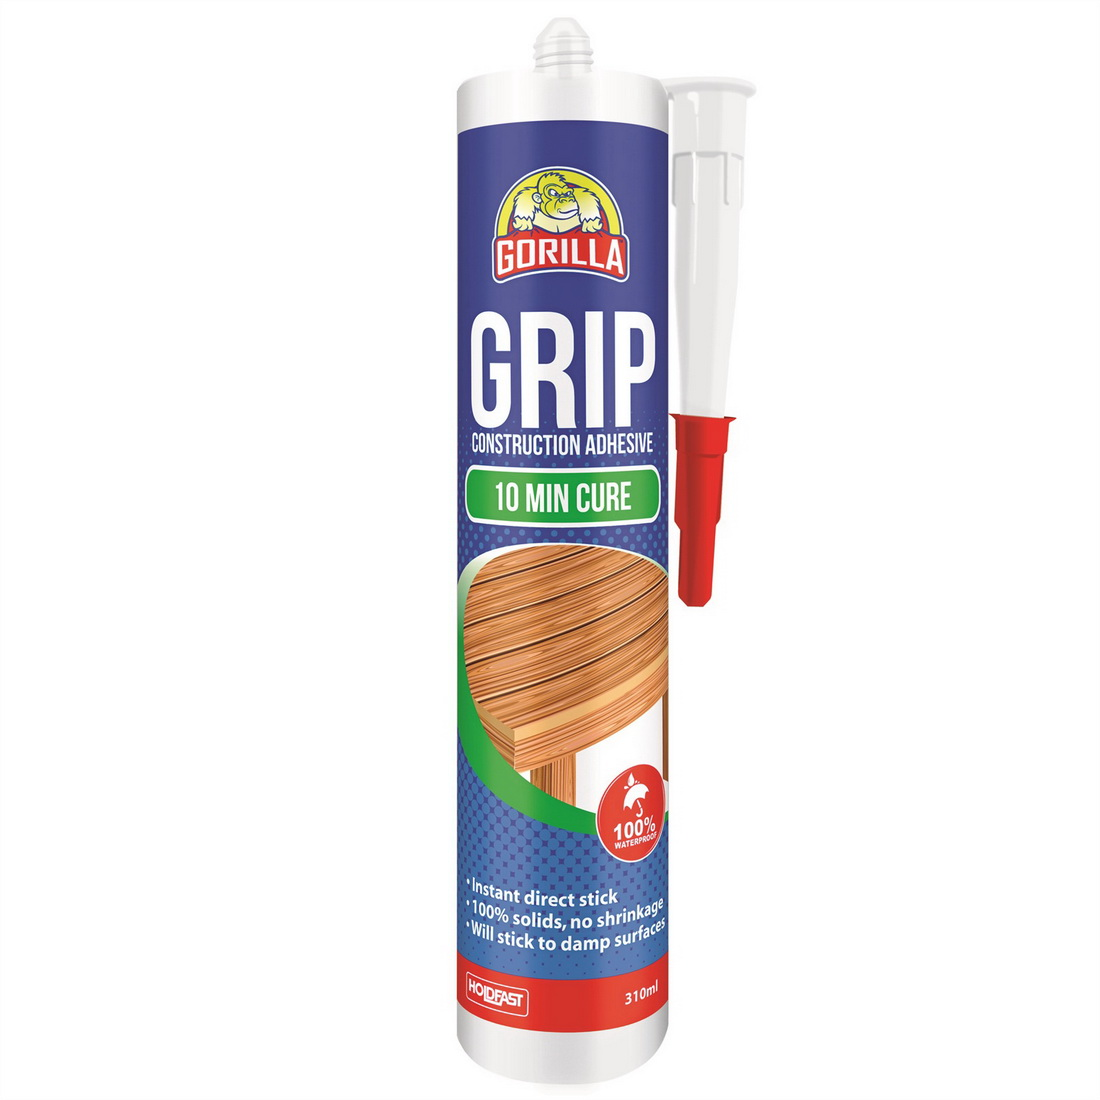 Grip 310mL 10minute Cure Construction Adhesive Translucent